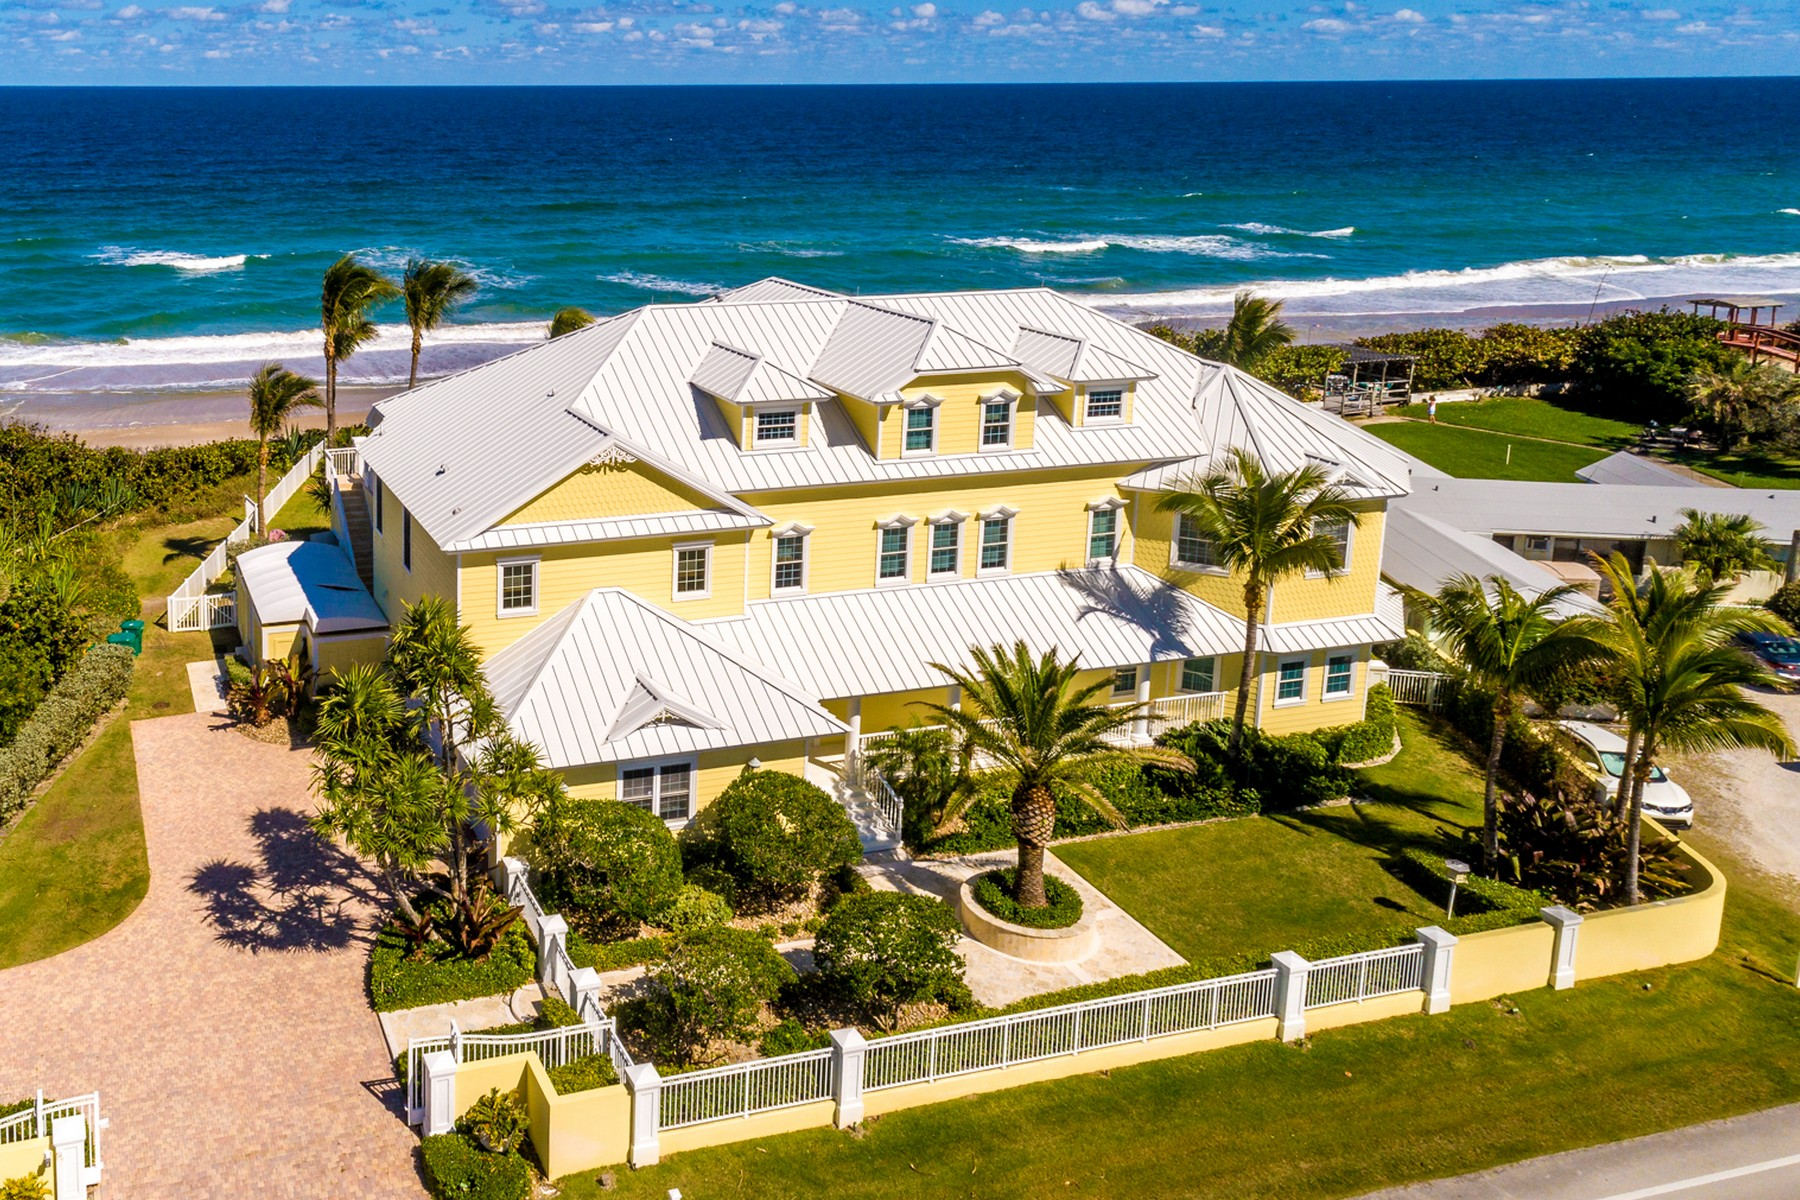 Property vì Bán tại Gorgeous Tropically Landscaped Home with Endless Ocean Vistas 5045 S Highway A1A Melbourne Beach, Florida 32951 Hoa Kỳ